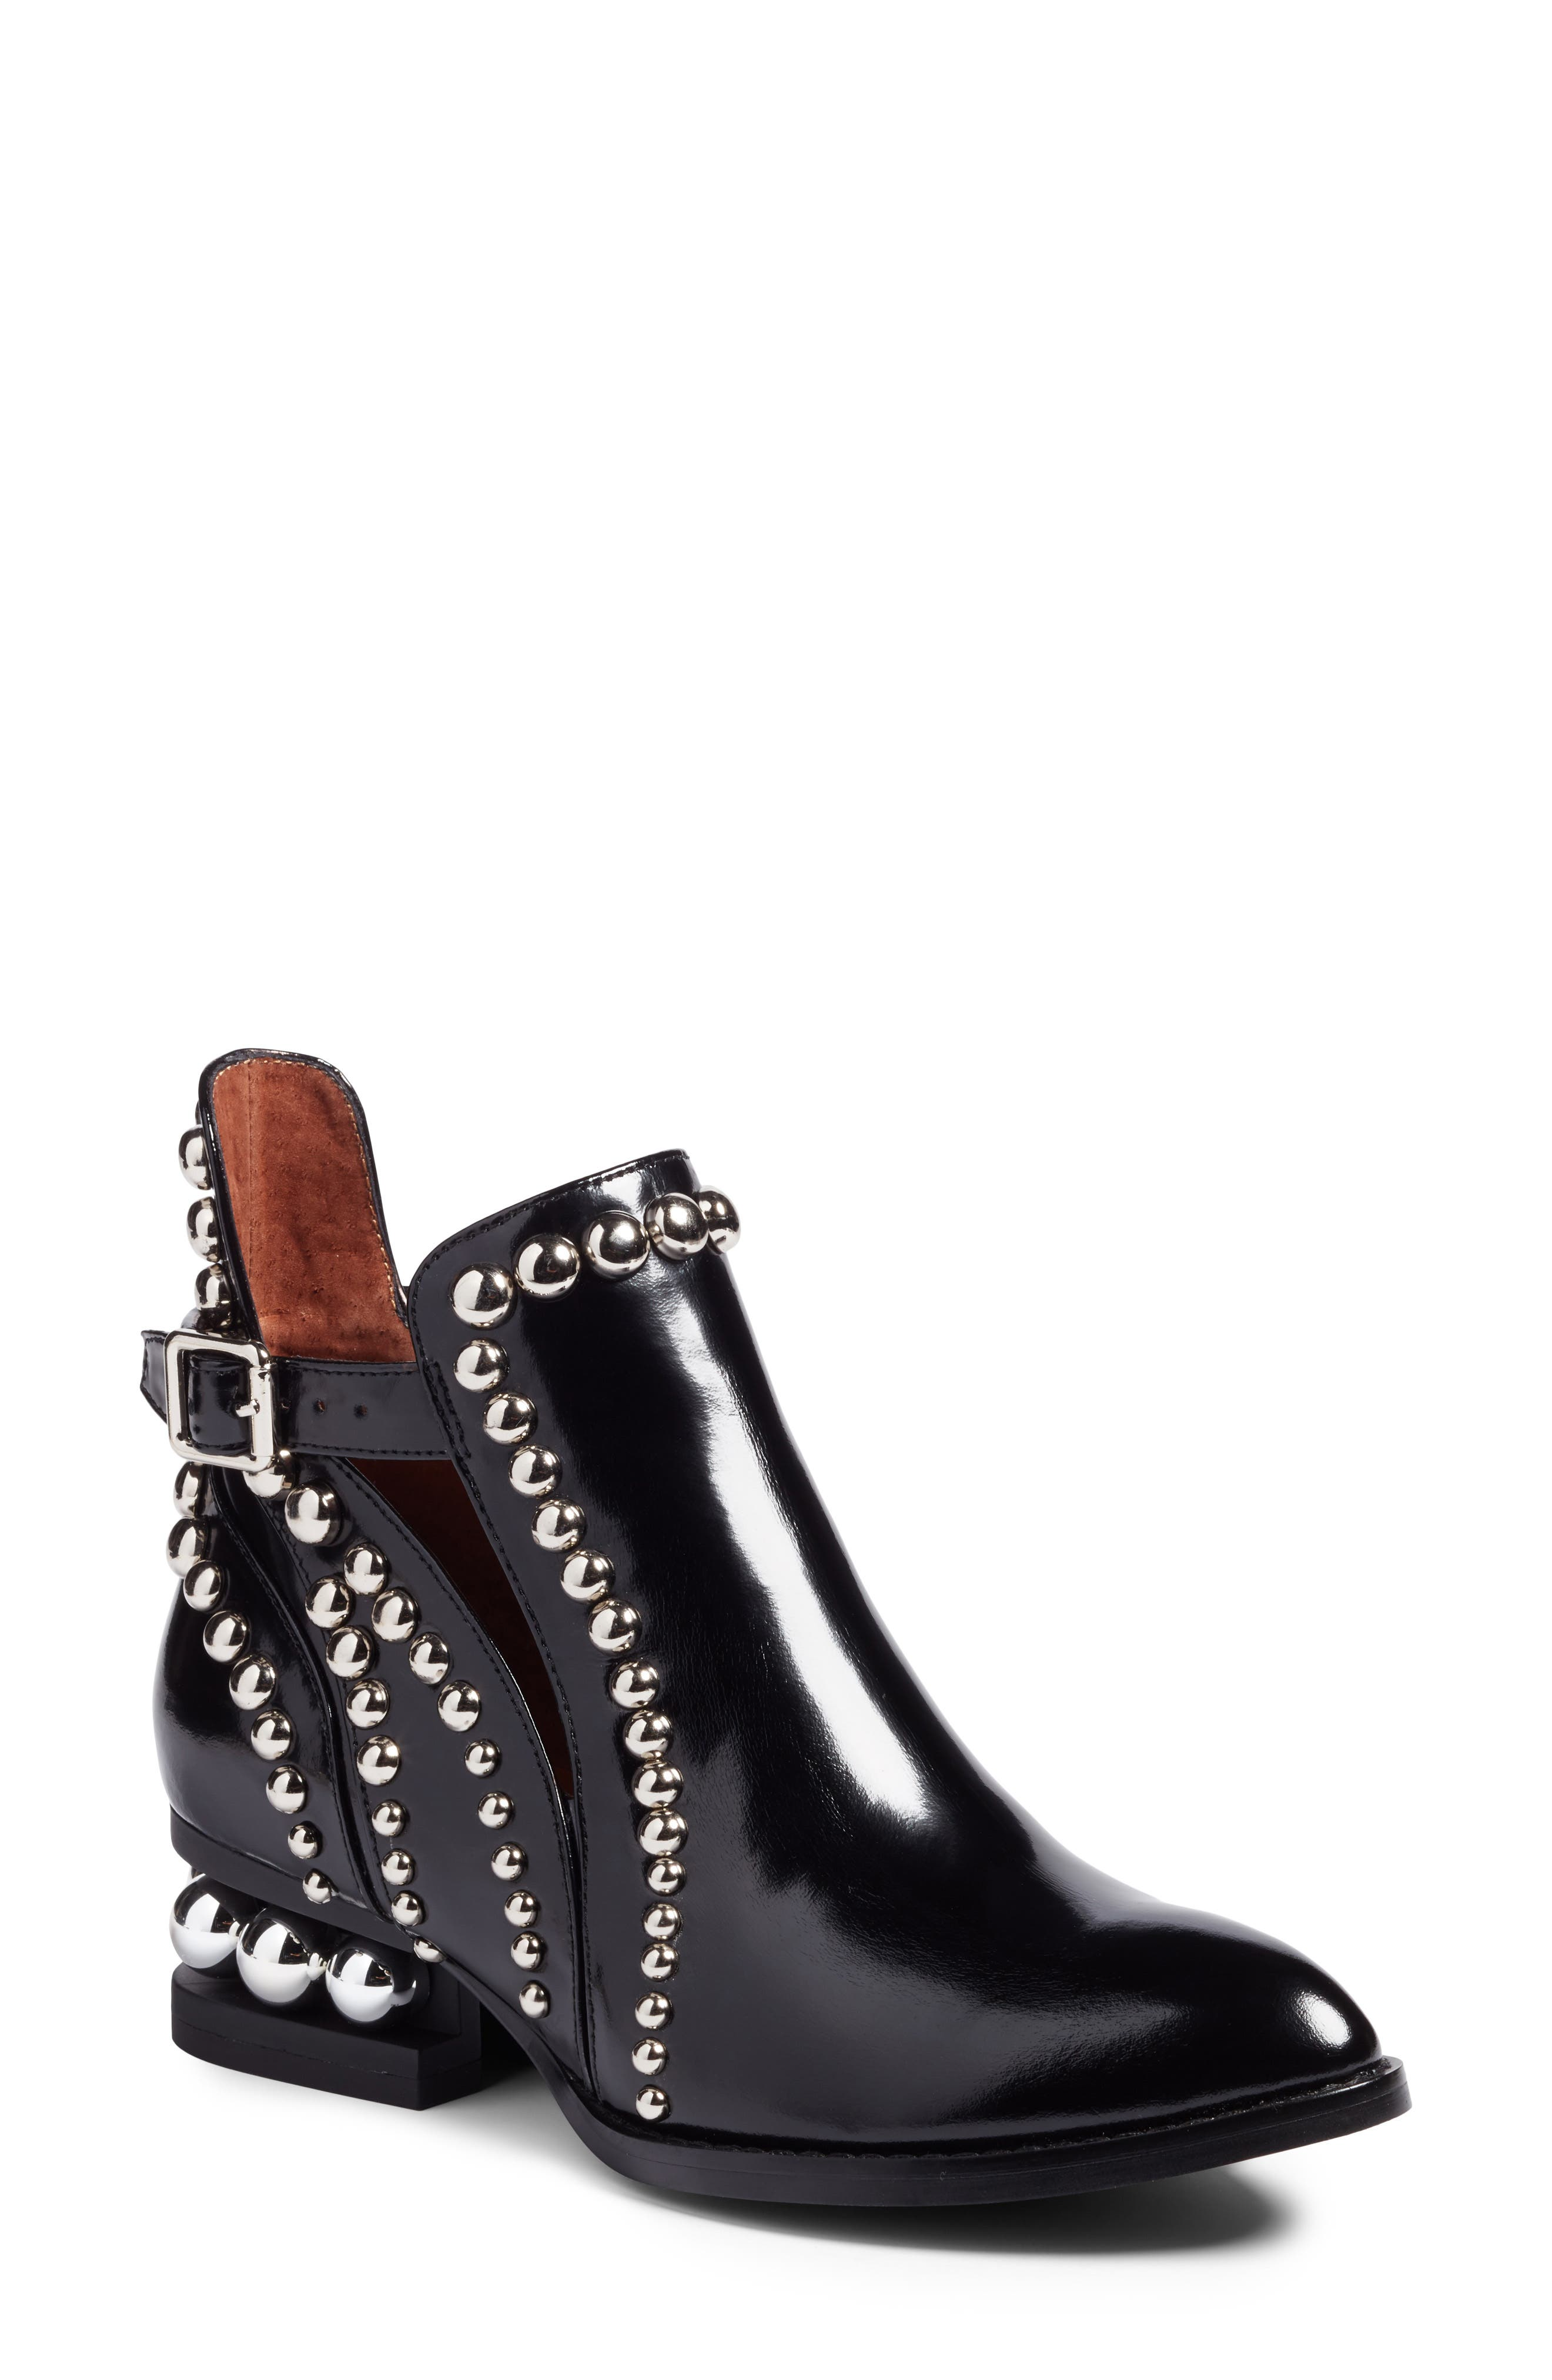 Rylance Studded Bootie,                         Main,                         color, BLACK BOX SILVER LEATHER